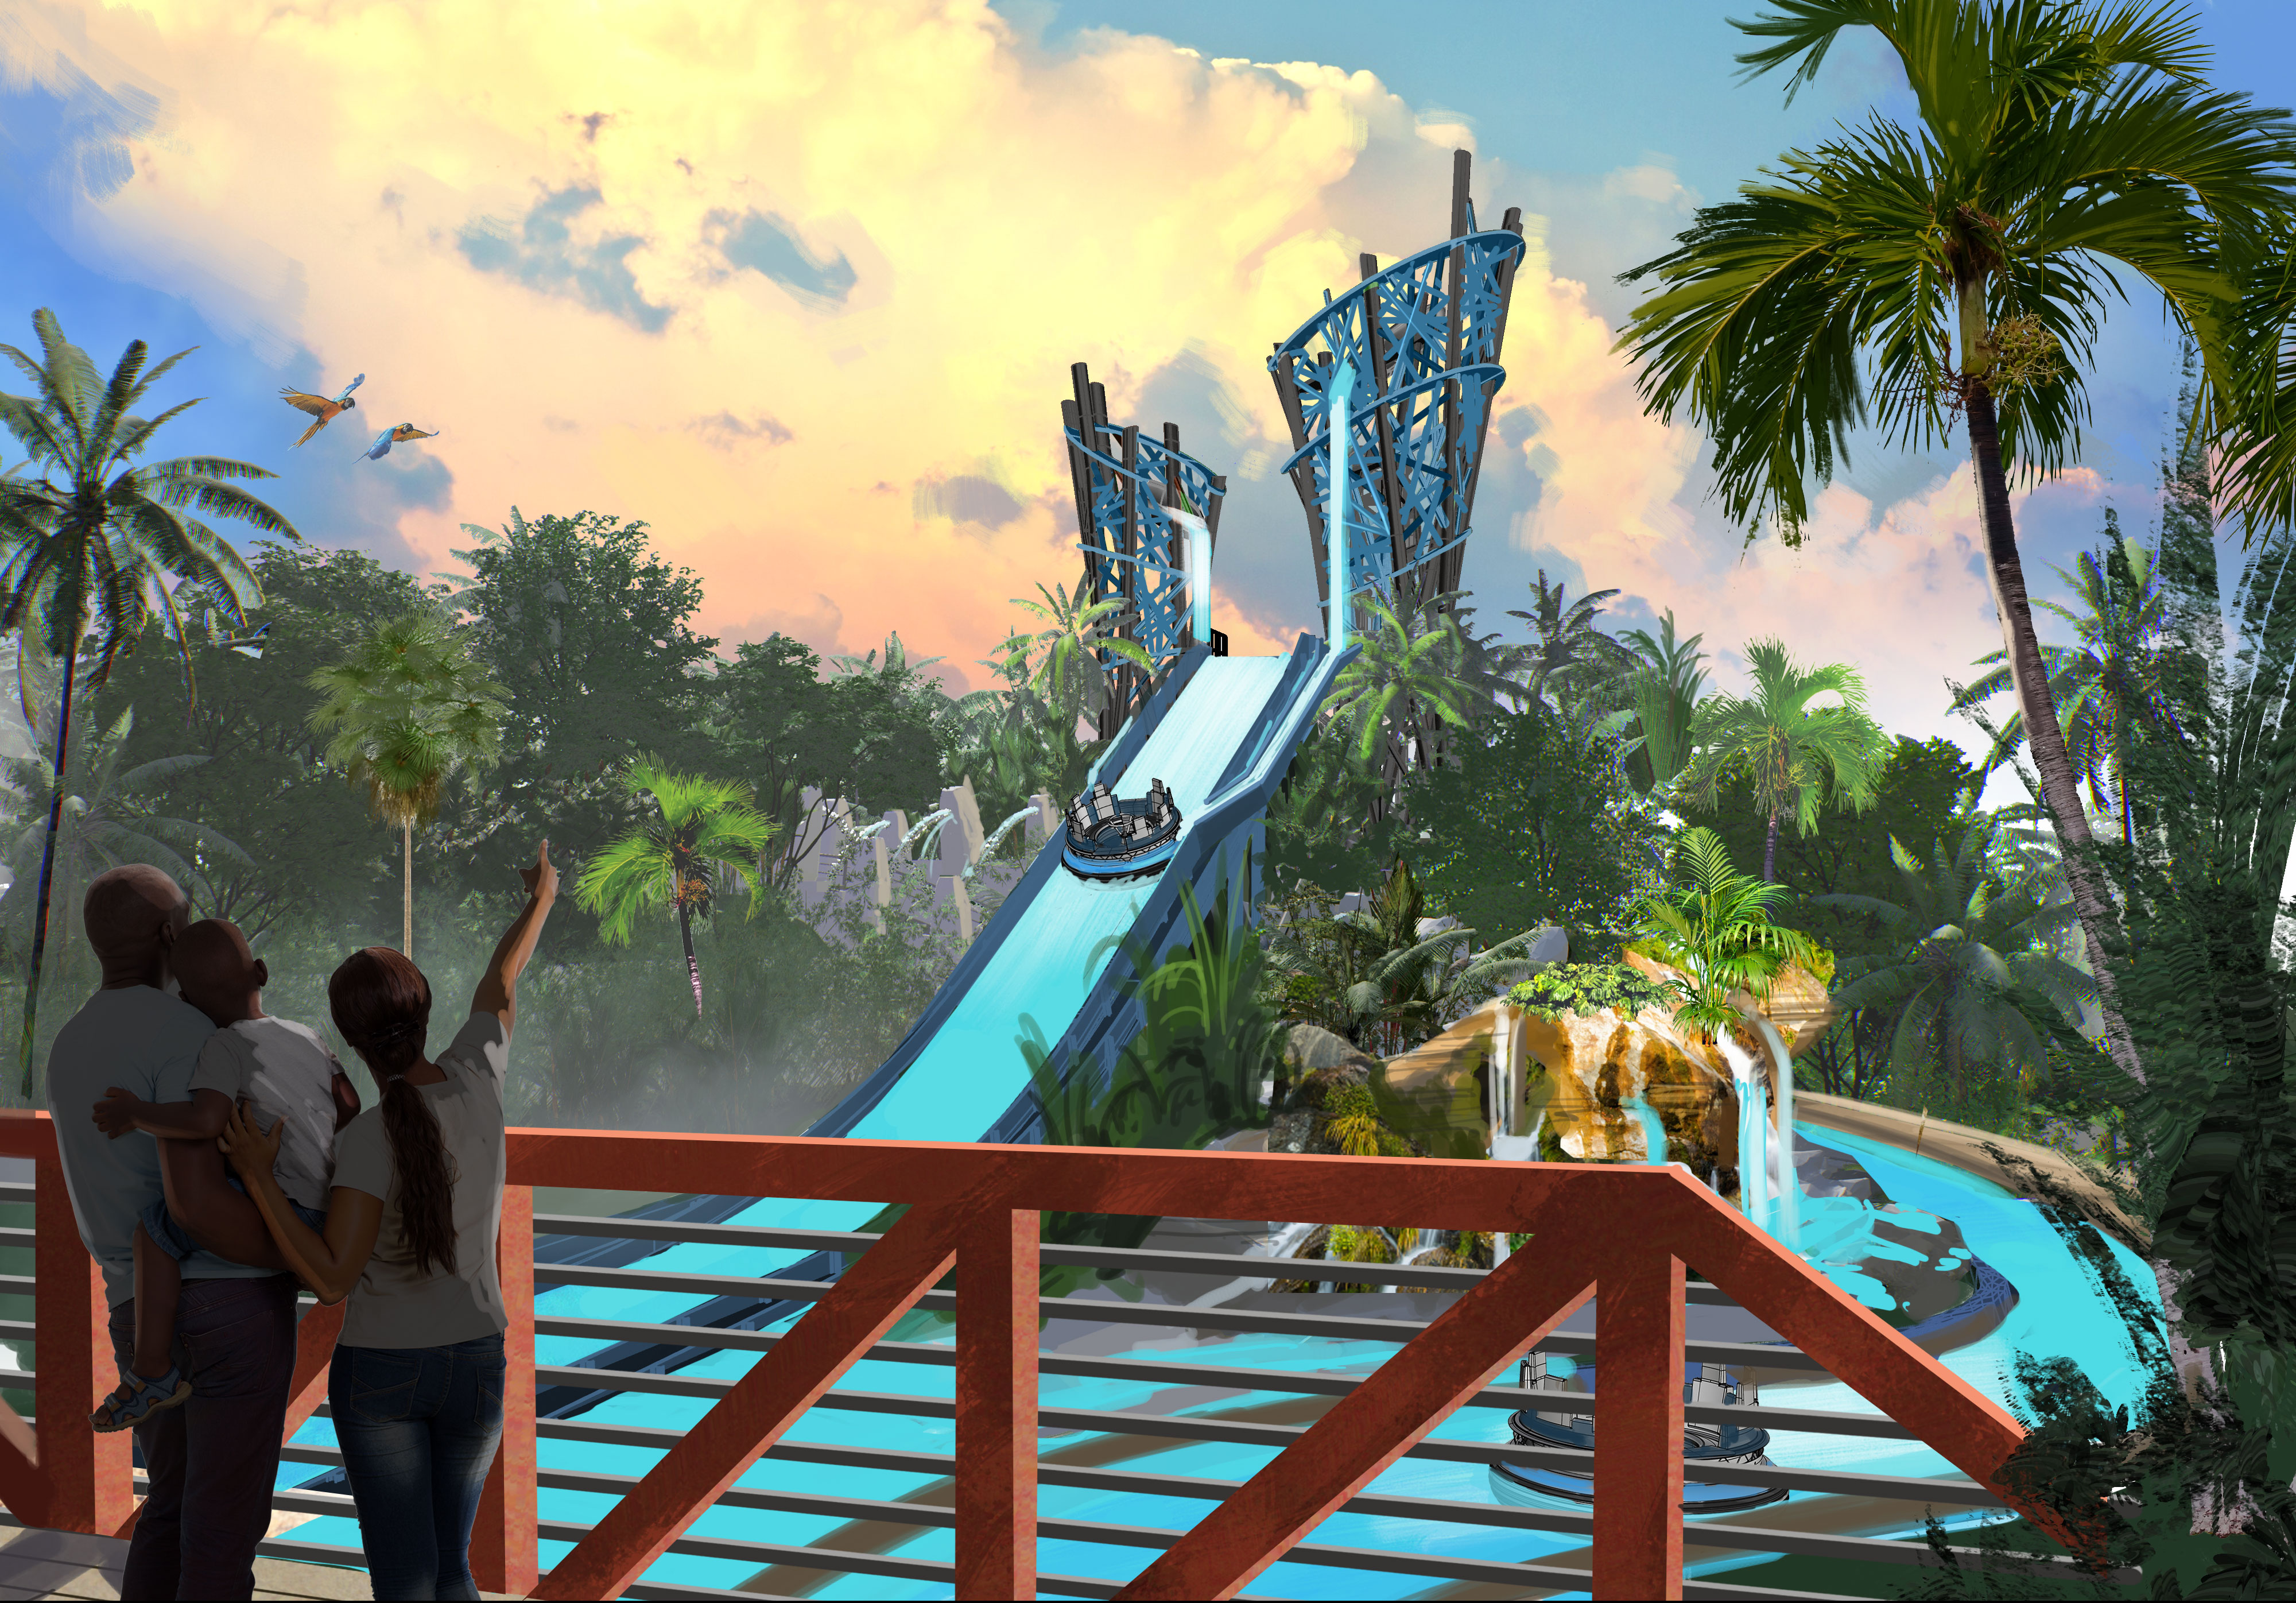 map seaworld orlando with New Ride Infinity Falls Open Seaworld Summer 2018 on Marco Island Map likewise New Ride Infinity Falls Open Seaworld Summer 2018 in addition 10512164825 moreover Jet Rescue besides Bushnell.